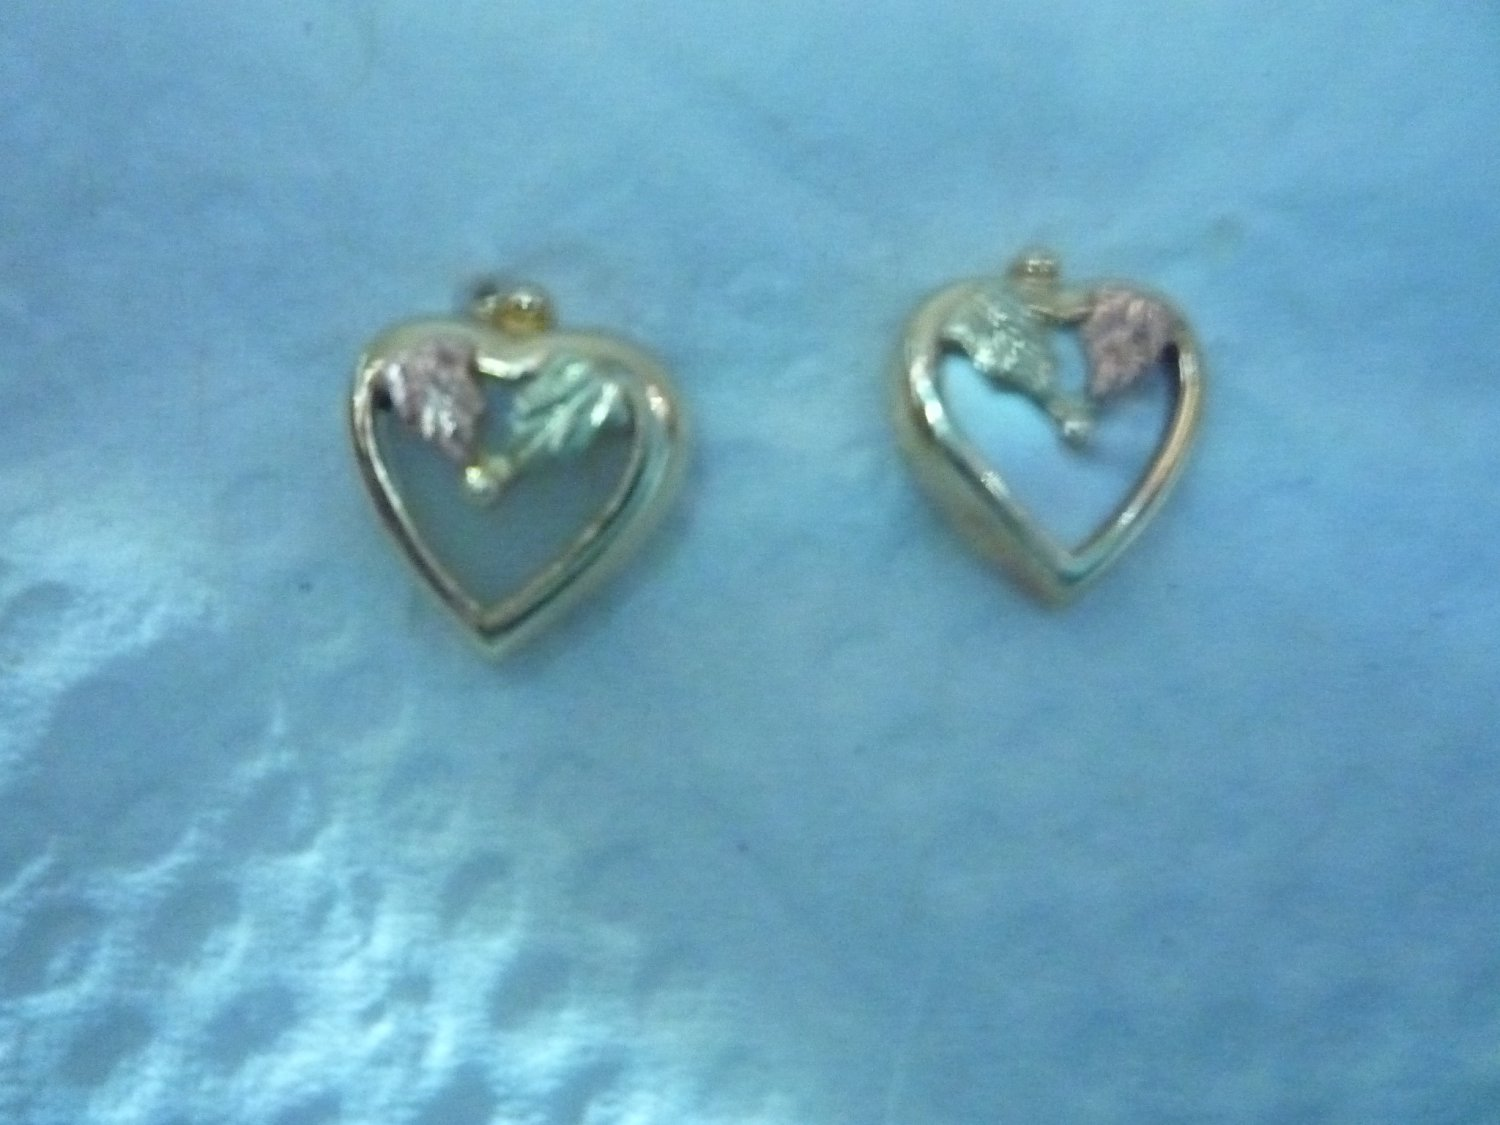 Blackhills gold heart earrings with mother of pearl